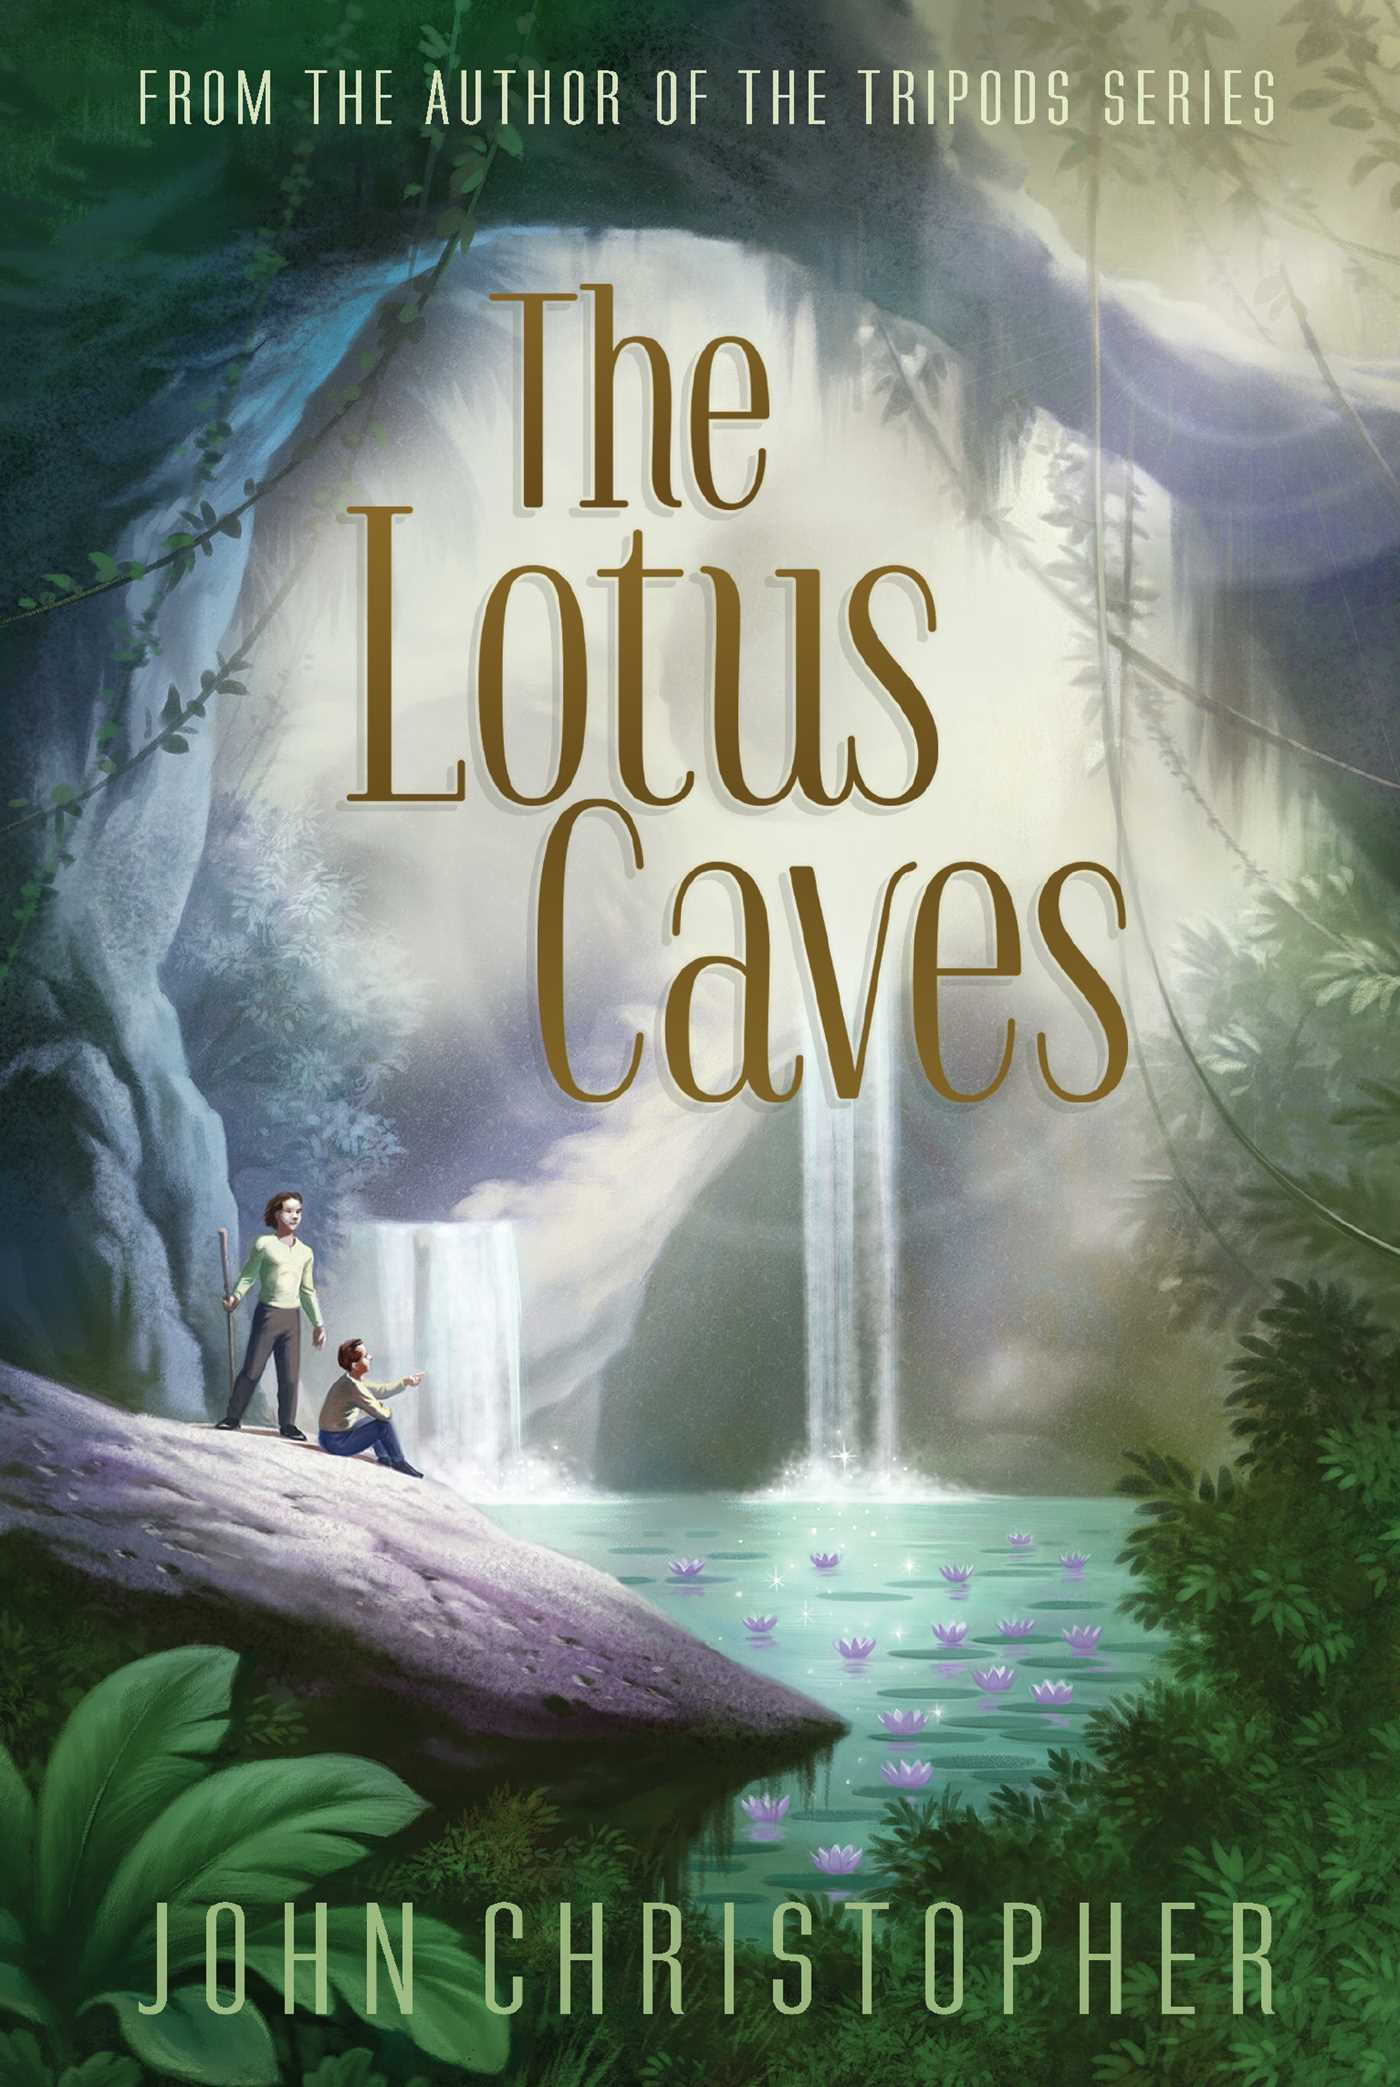 Book Cover Image (jpg): The Lotus Caves